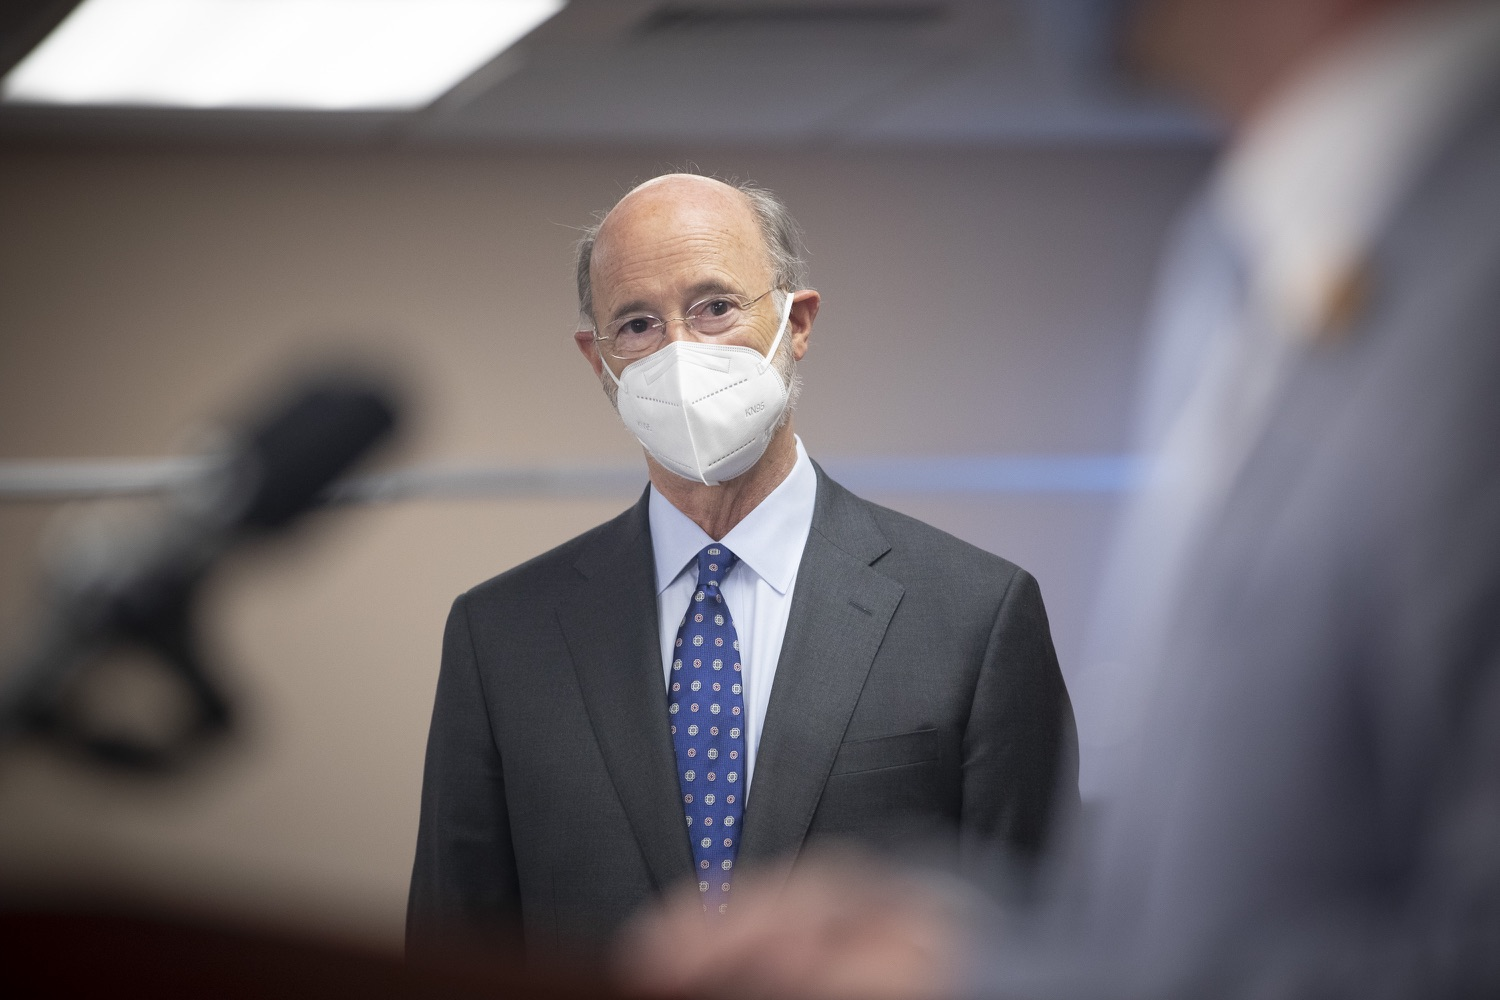 """<a href=""""https://filesource.wostreaming.net/commonwealthofpa/photo/18646_gov_vaccines_dz_012.jpg"""" target=""""_blank"""">⇣Download Photo<br></a>Pennsylvania Governor Tom Wolf listening to speakers.  After vaccinating more than 112,500 teachers and school staff in only about three weeks, Governor Tom Wolf visited Luzerne County today to announce the special vaccination initiative is a success and was completed ahead of schedule. The accomplishment is an important step to help more students and teachers safely return to classrooms across the state.  Kingston, PA - April 2, 2021"""